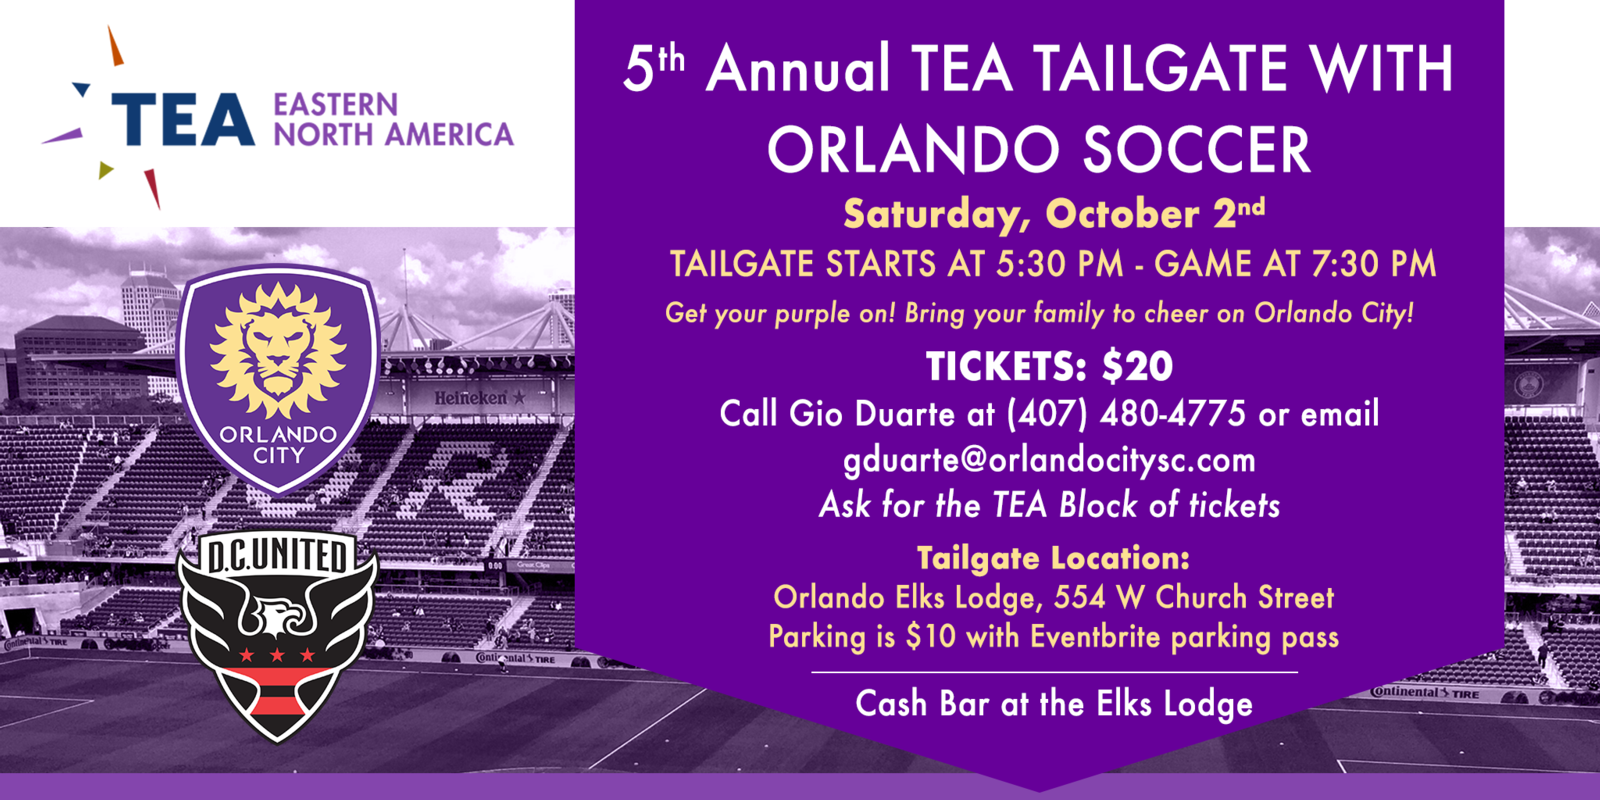 5th Annual TEA Tailgate with Orlando Soccer